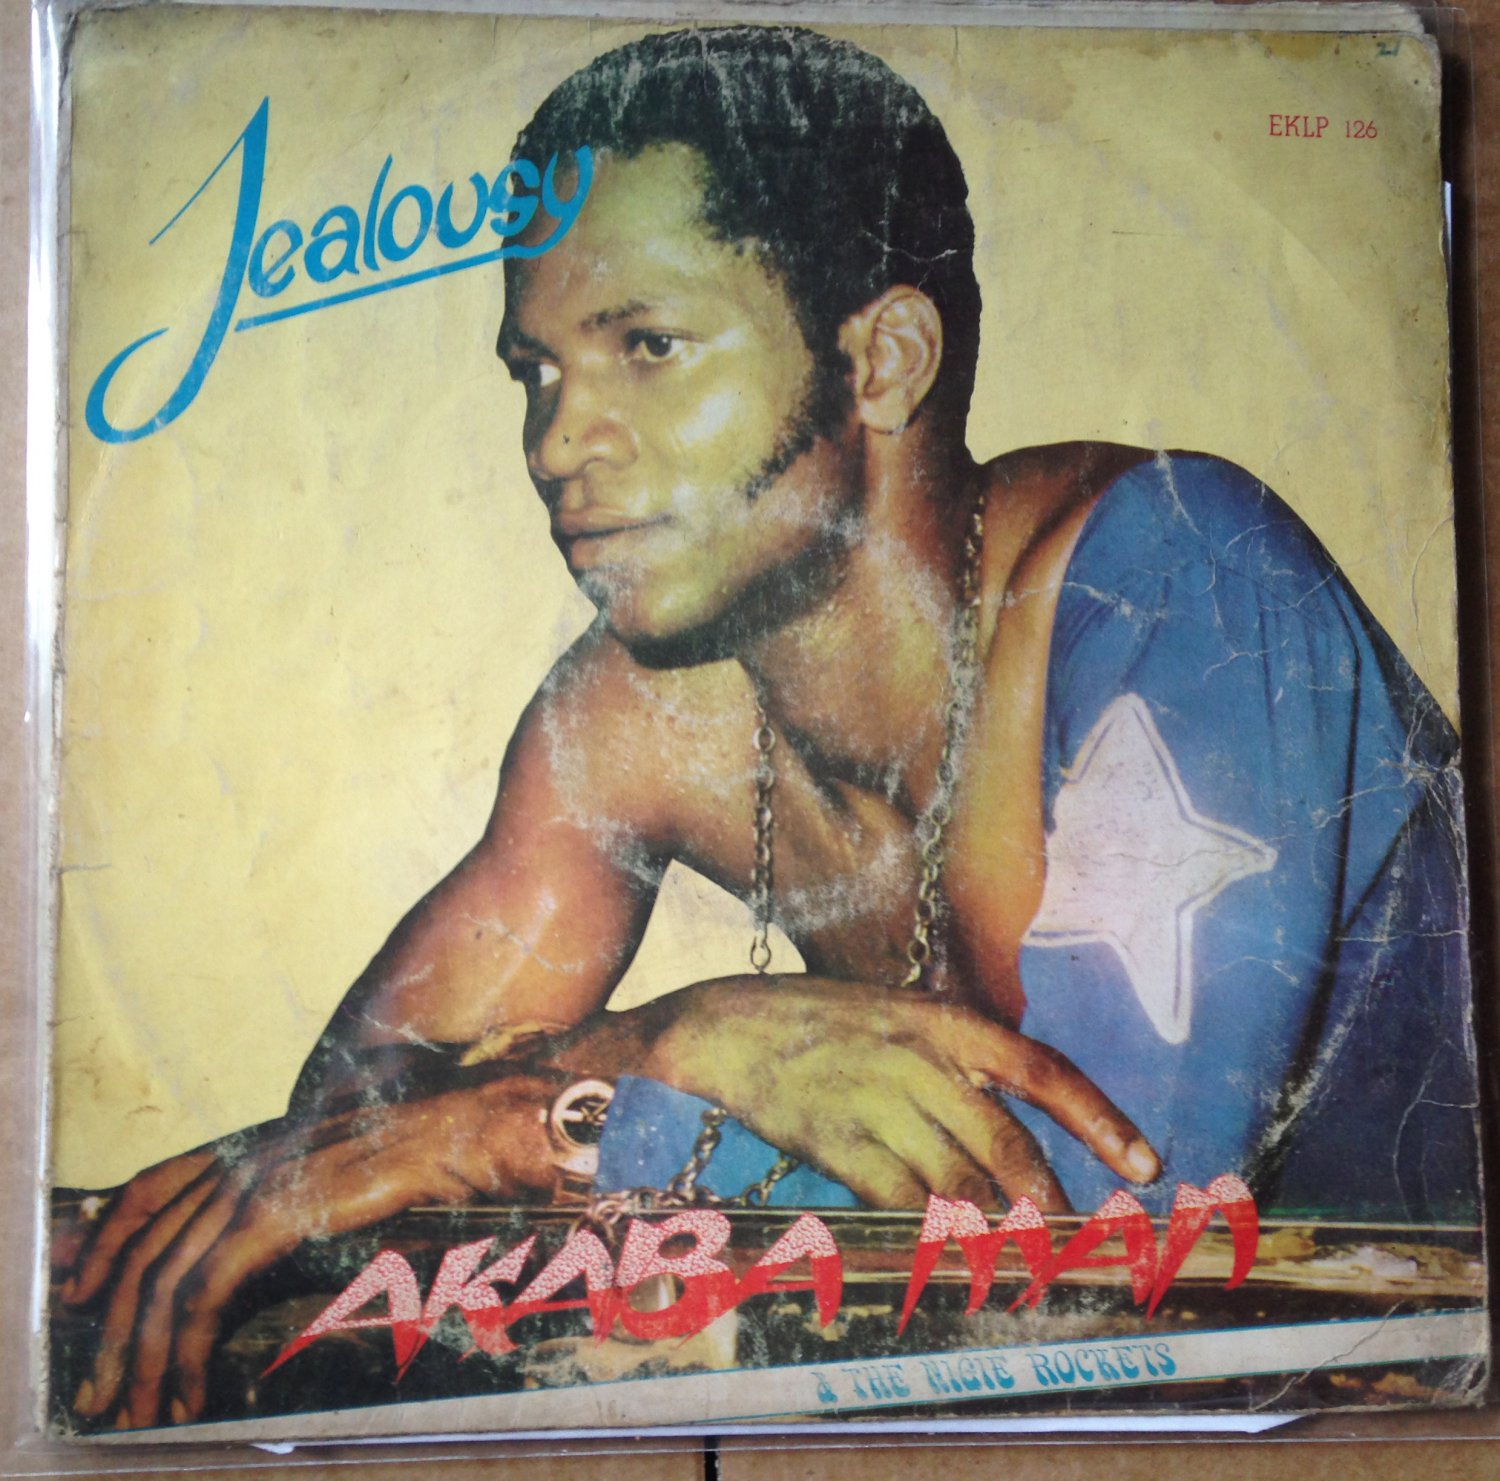 AKABA MAN & THE NIGIE ROCKETS LP jealousy EDO FUNK NIGERIA mp3 LISTEN